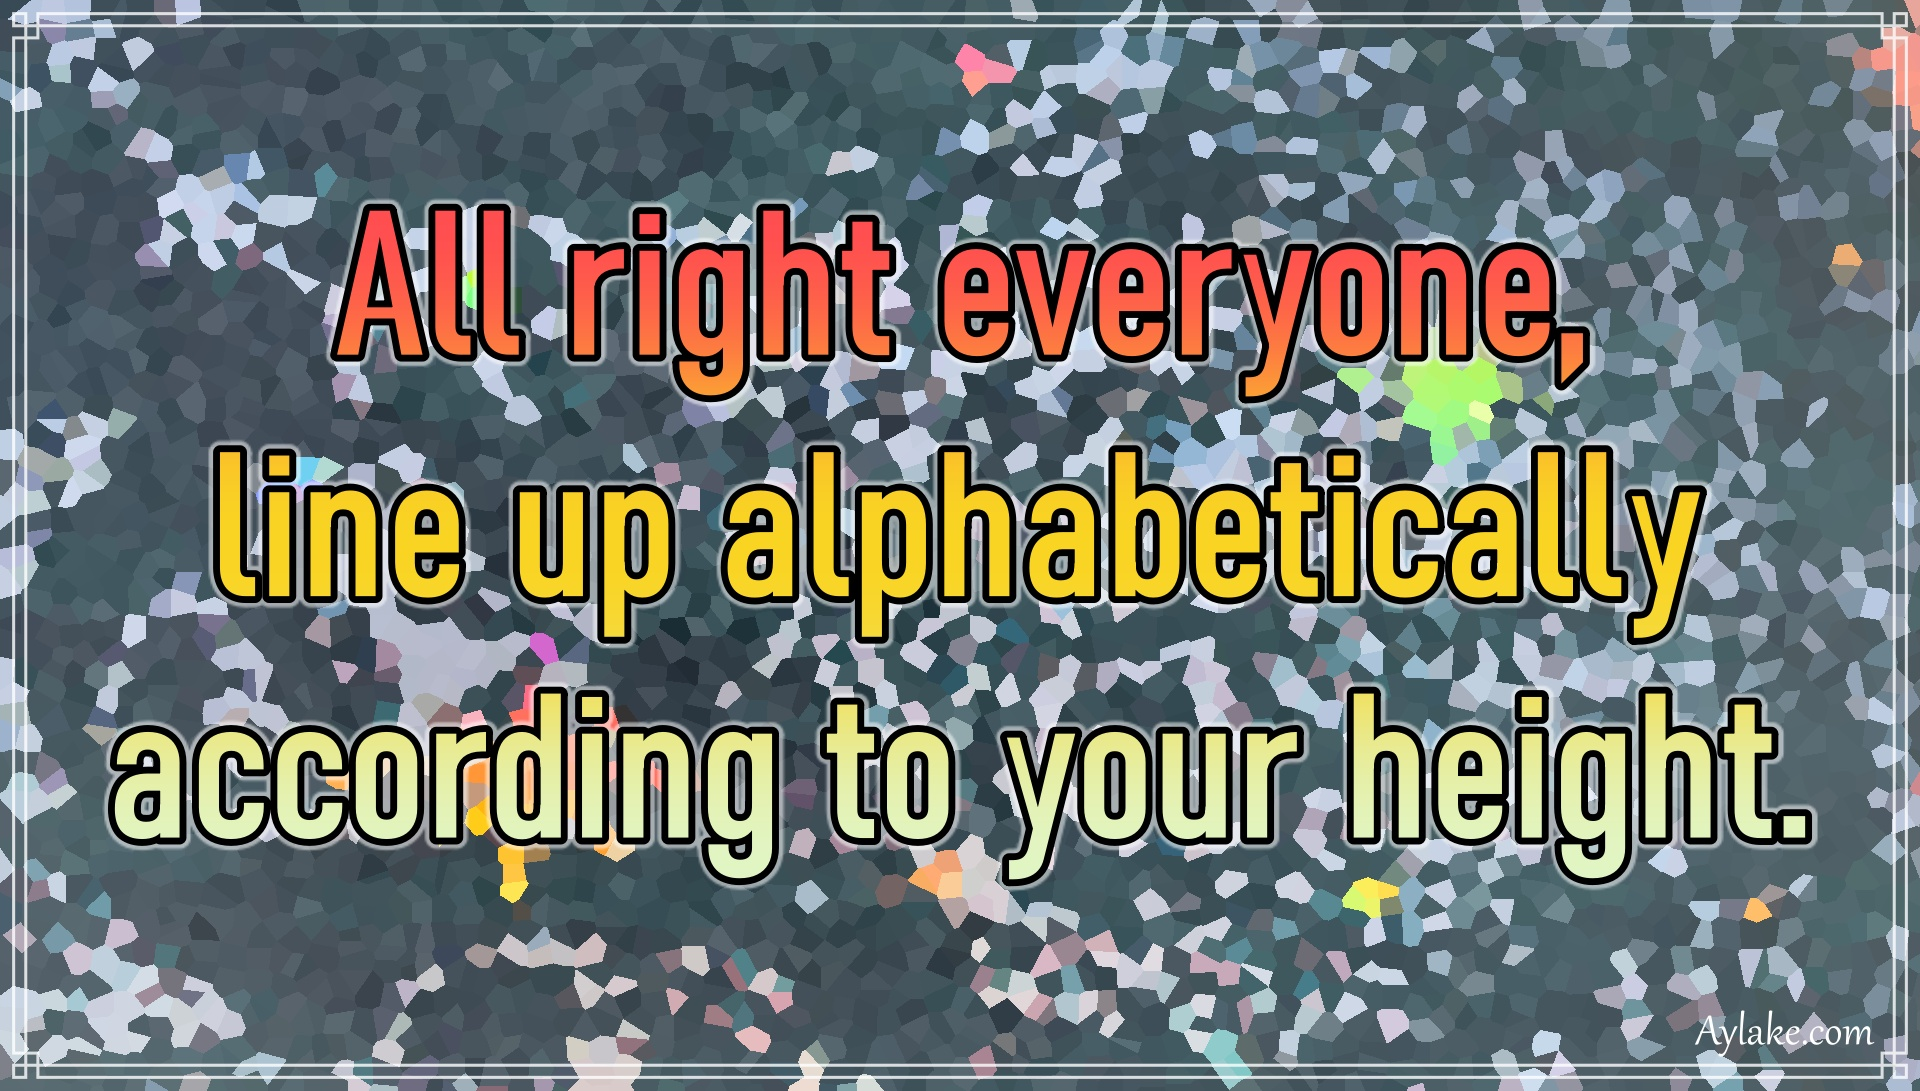 Funny quotes All right everyone line up alphabetically according to your height Aylake